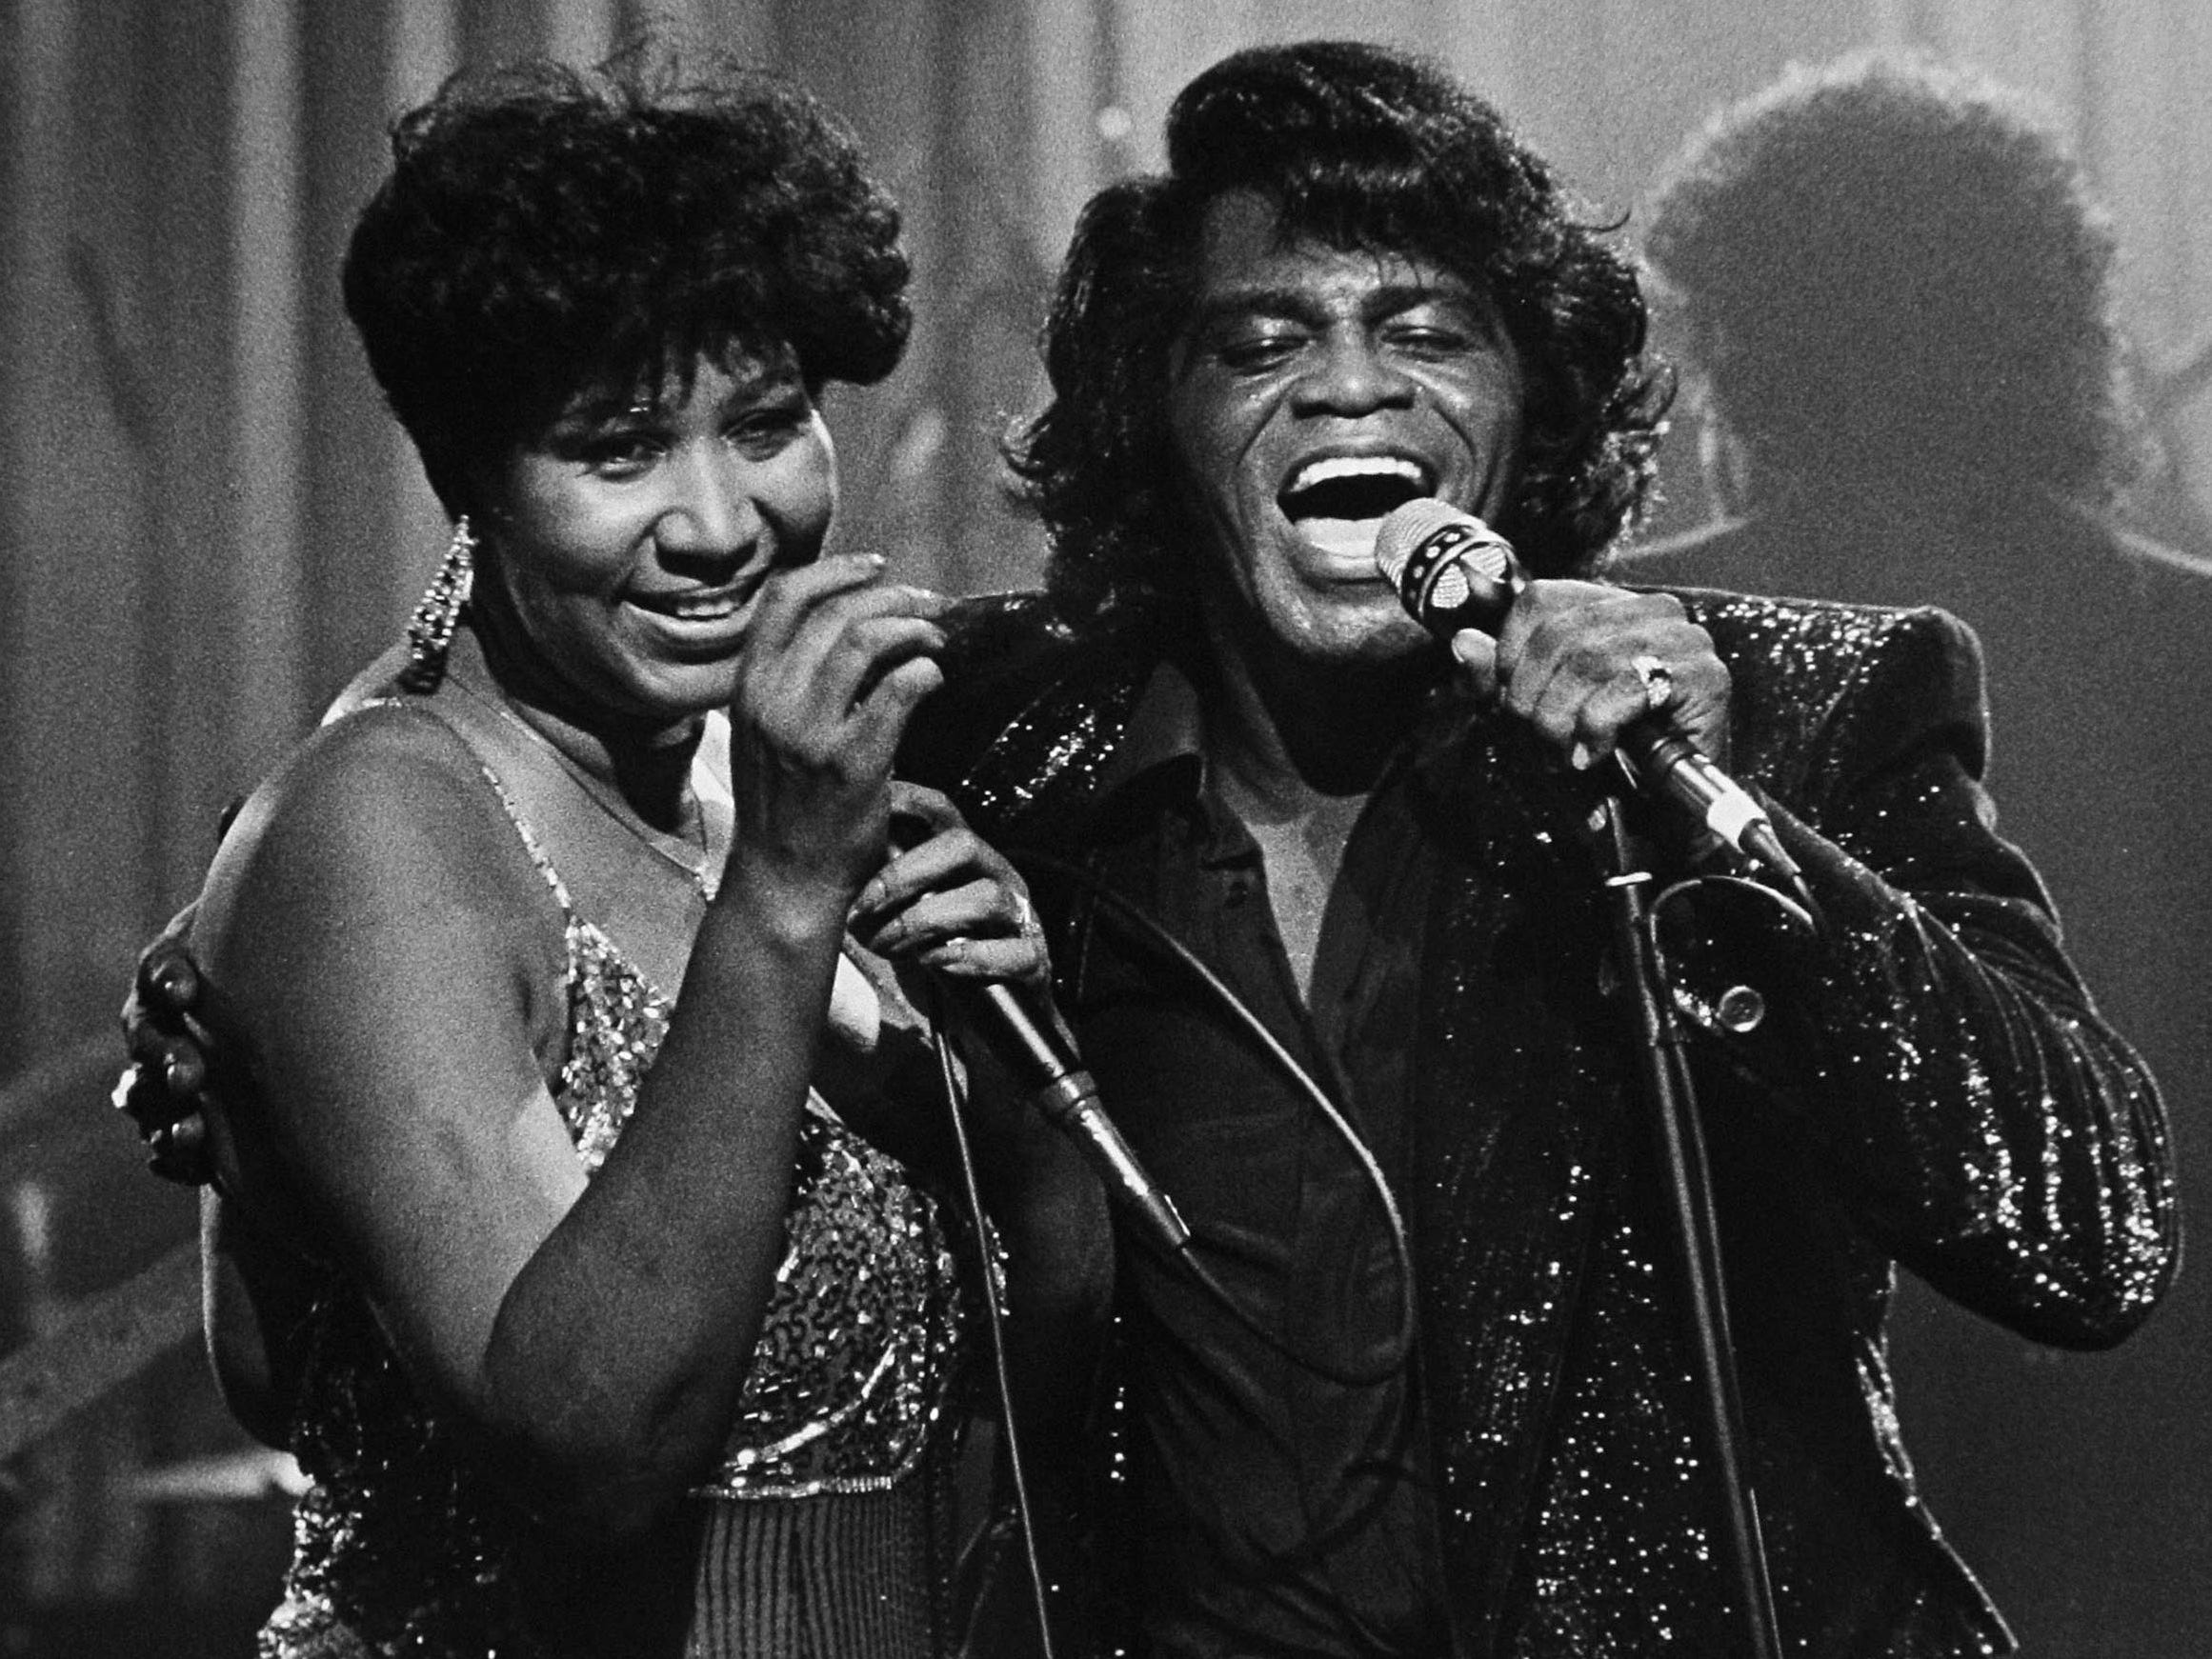 1ORG XMIT: MICO202 FILE - In this Jan. 11, 1987 file photo, soul singers James Brown and Aretha Franklin sing during a Home Box Office taping at the Taboo night club in Detroit. (AP Photo/Rob Kozloff, FILE)